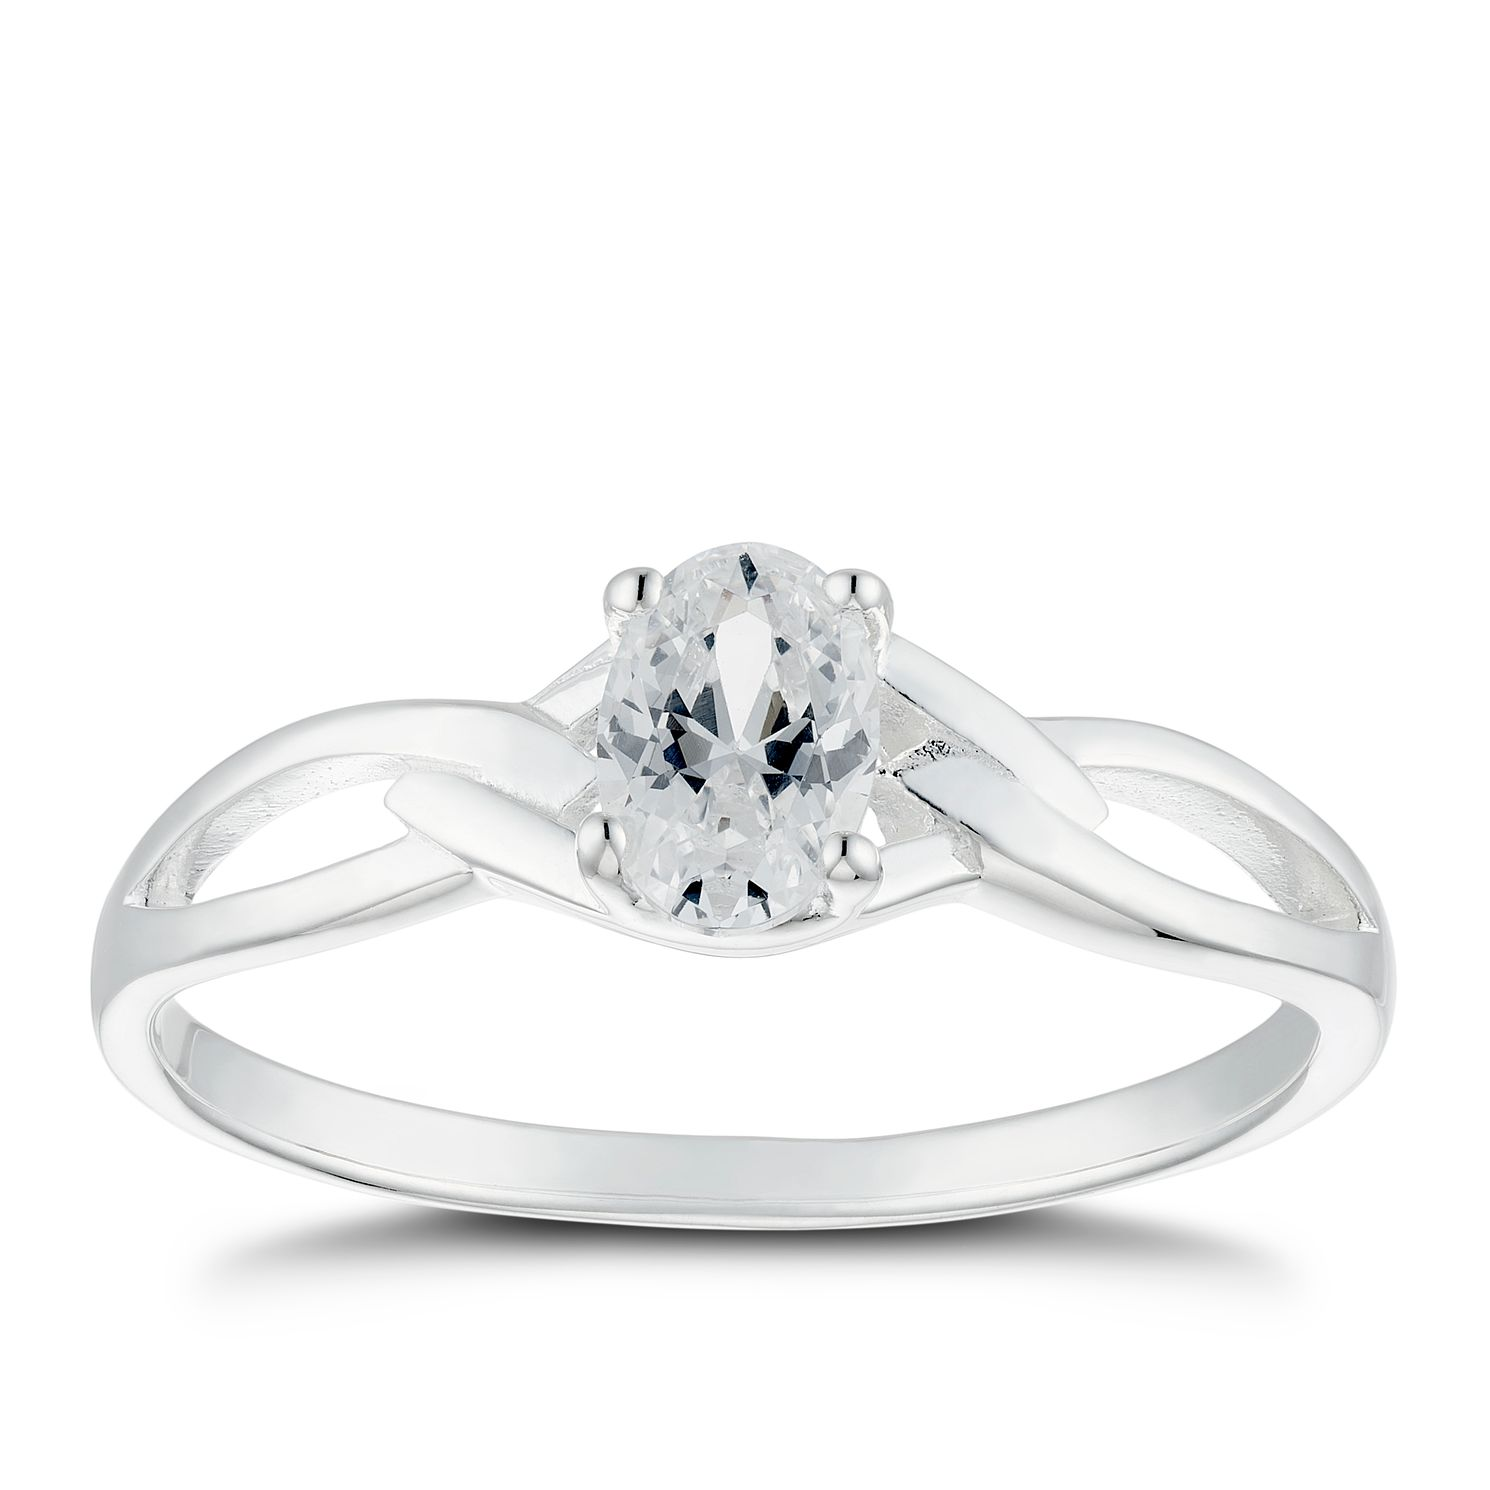 Silver Cubic Zirconia Solitaire Wave Ring - Size L - Product number 4842960